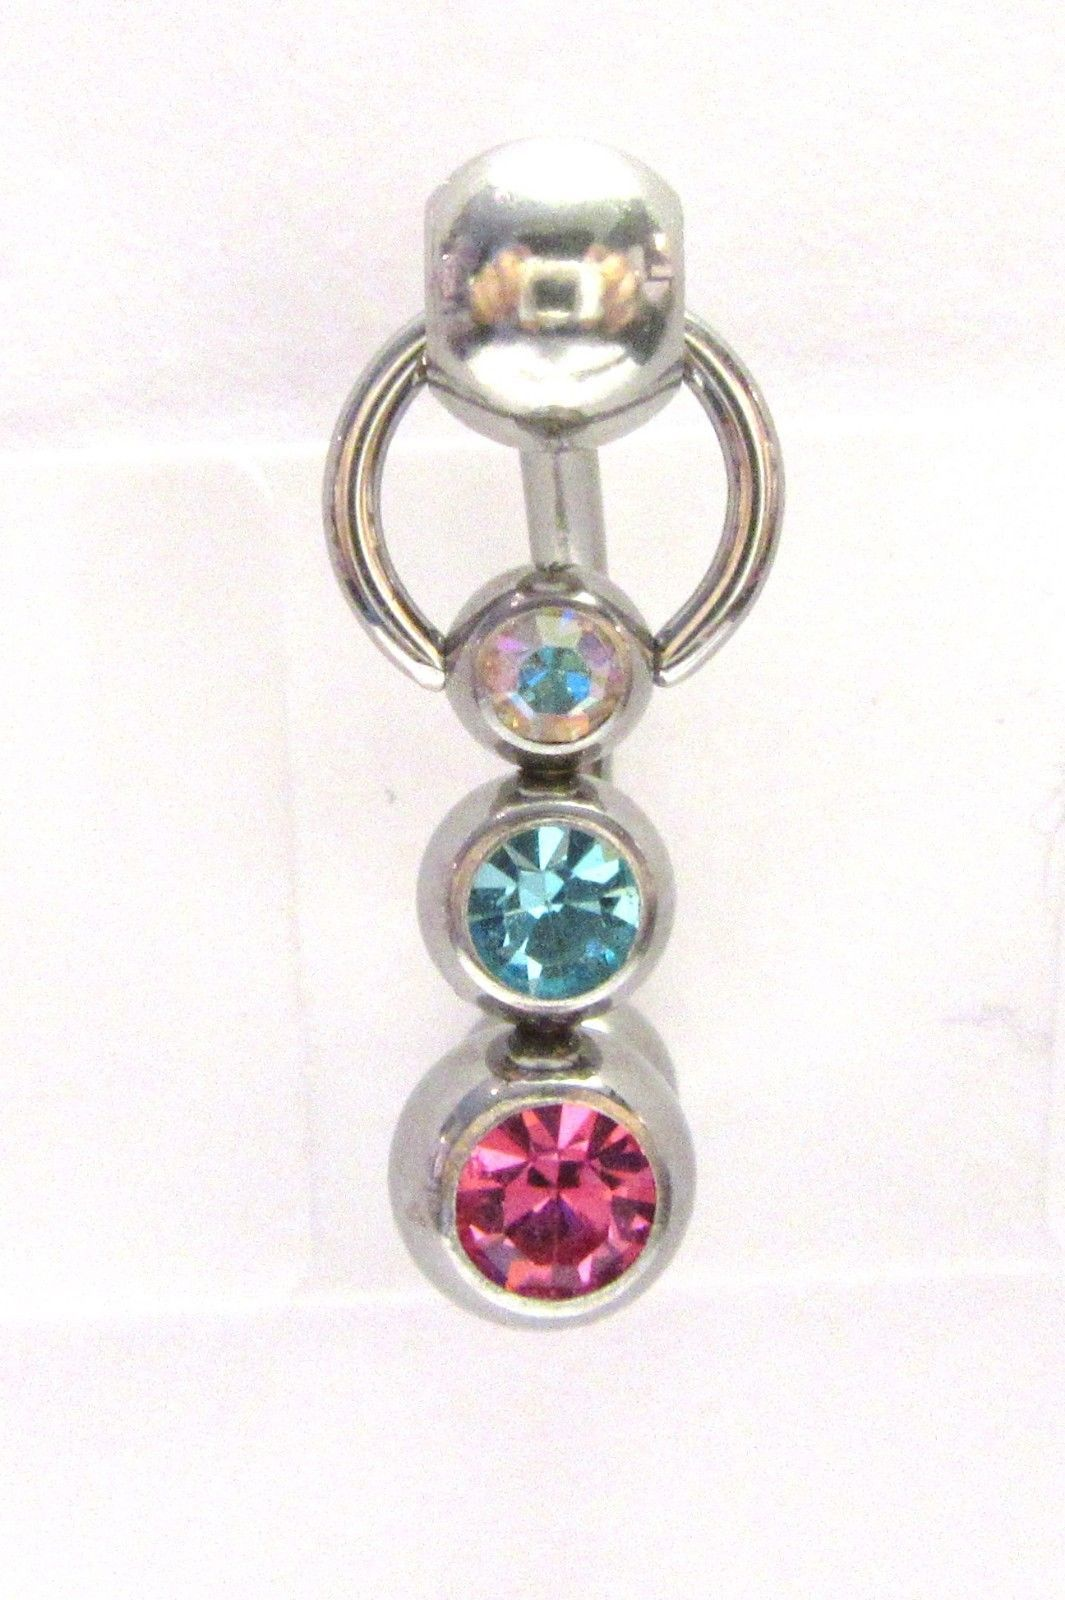 Triple Crystal Ball Dangle Bar Vch Jewelry Clit Clitoral Hood Ring G